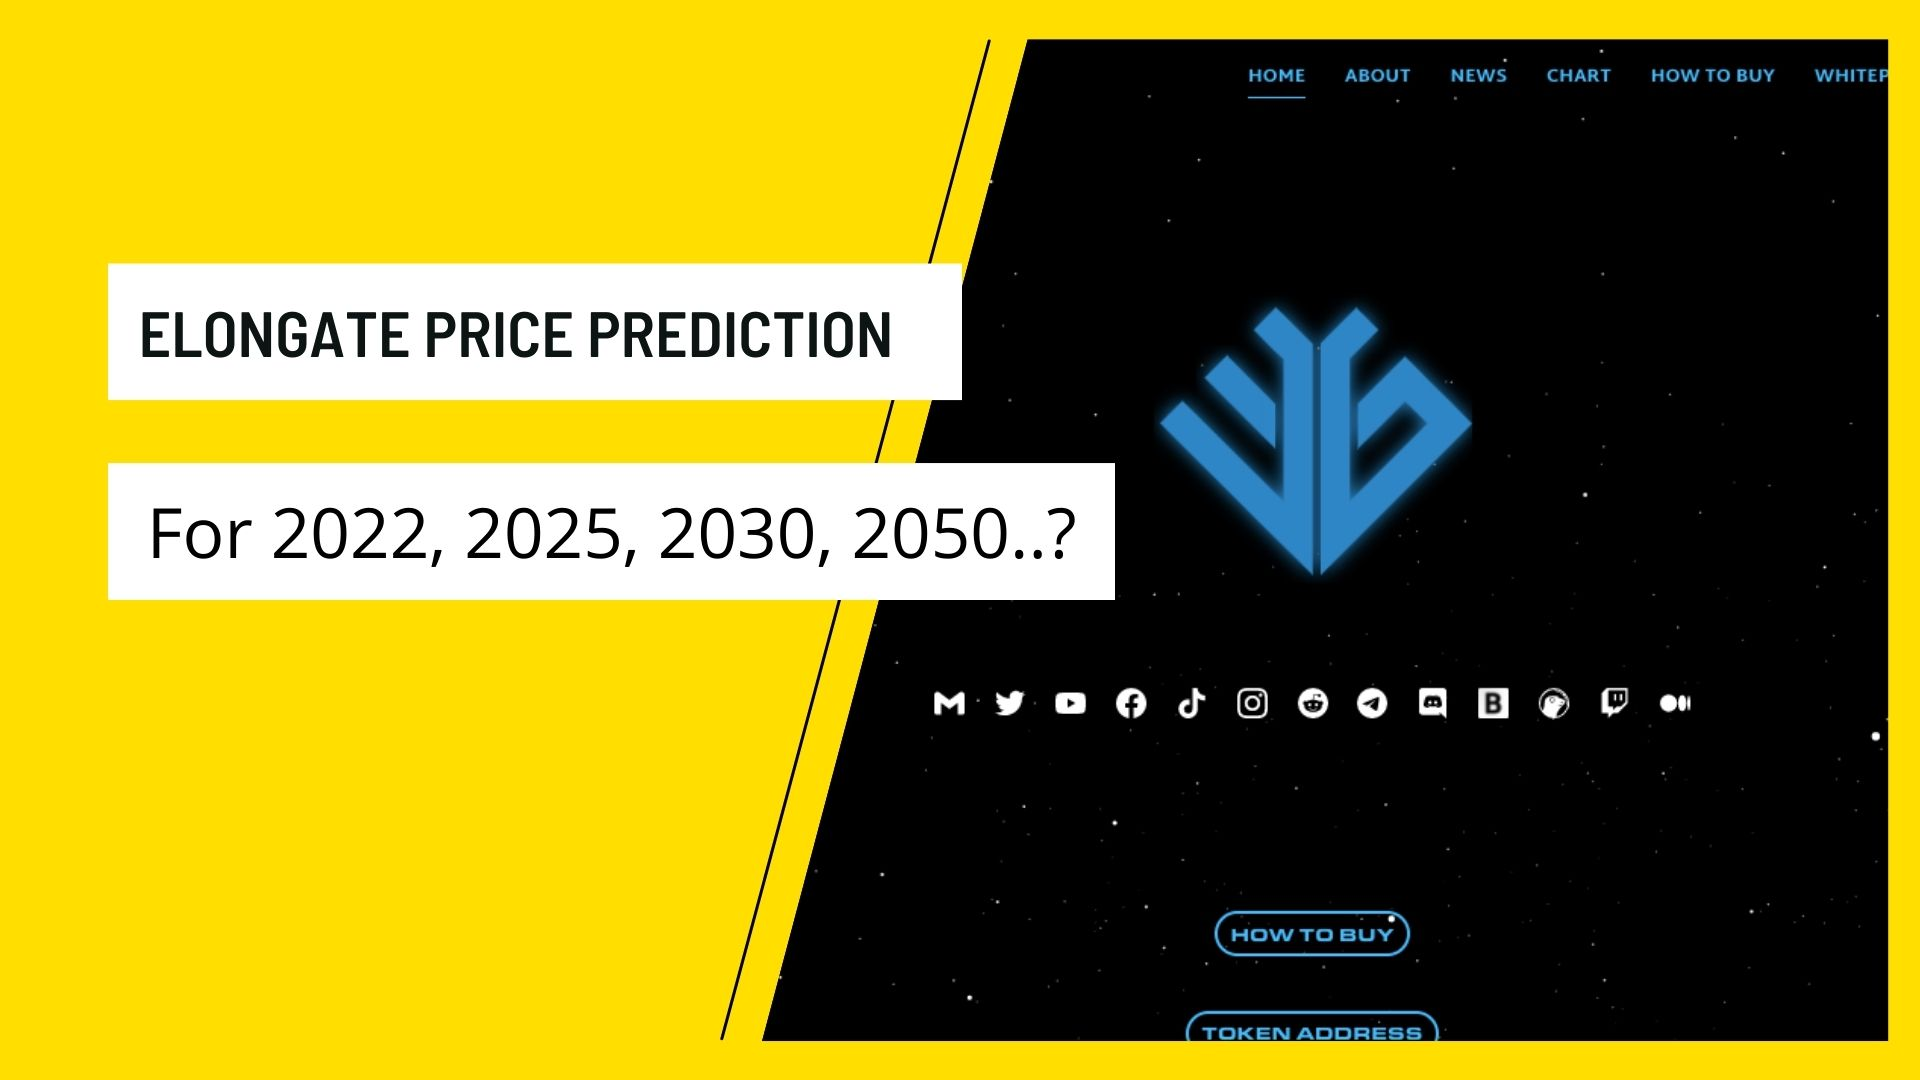 ElonGate Price Prediction